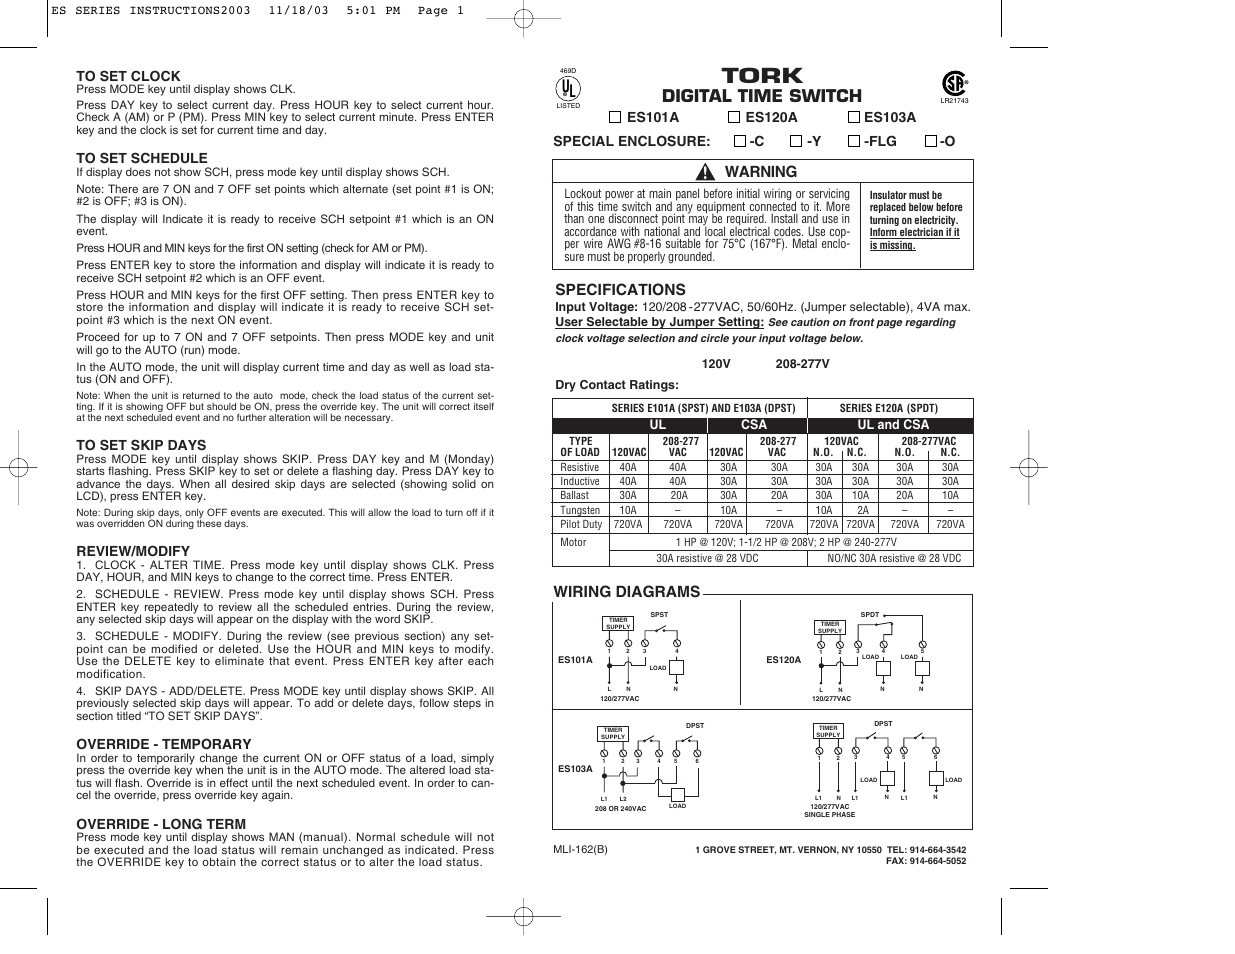 Tork, Digital time switch, Wiring diagrams | Warning, Specifications | NSi  Industries ES103A